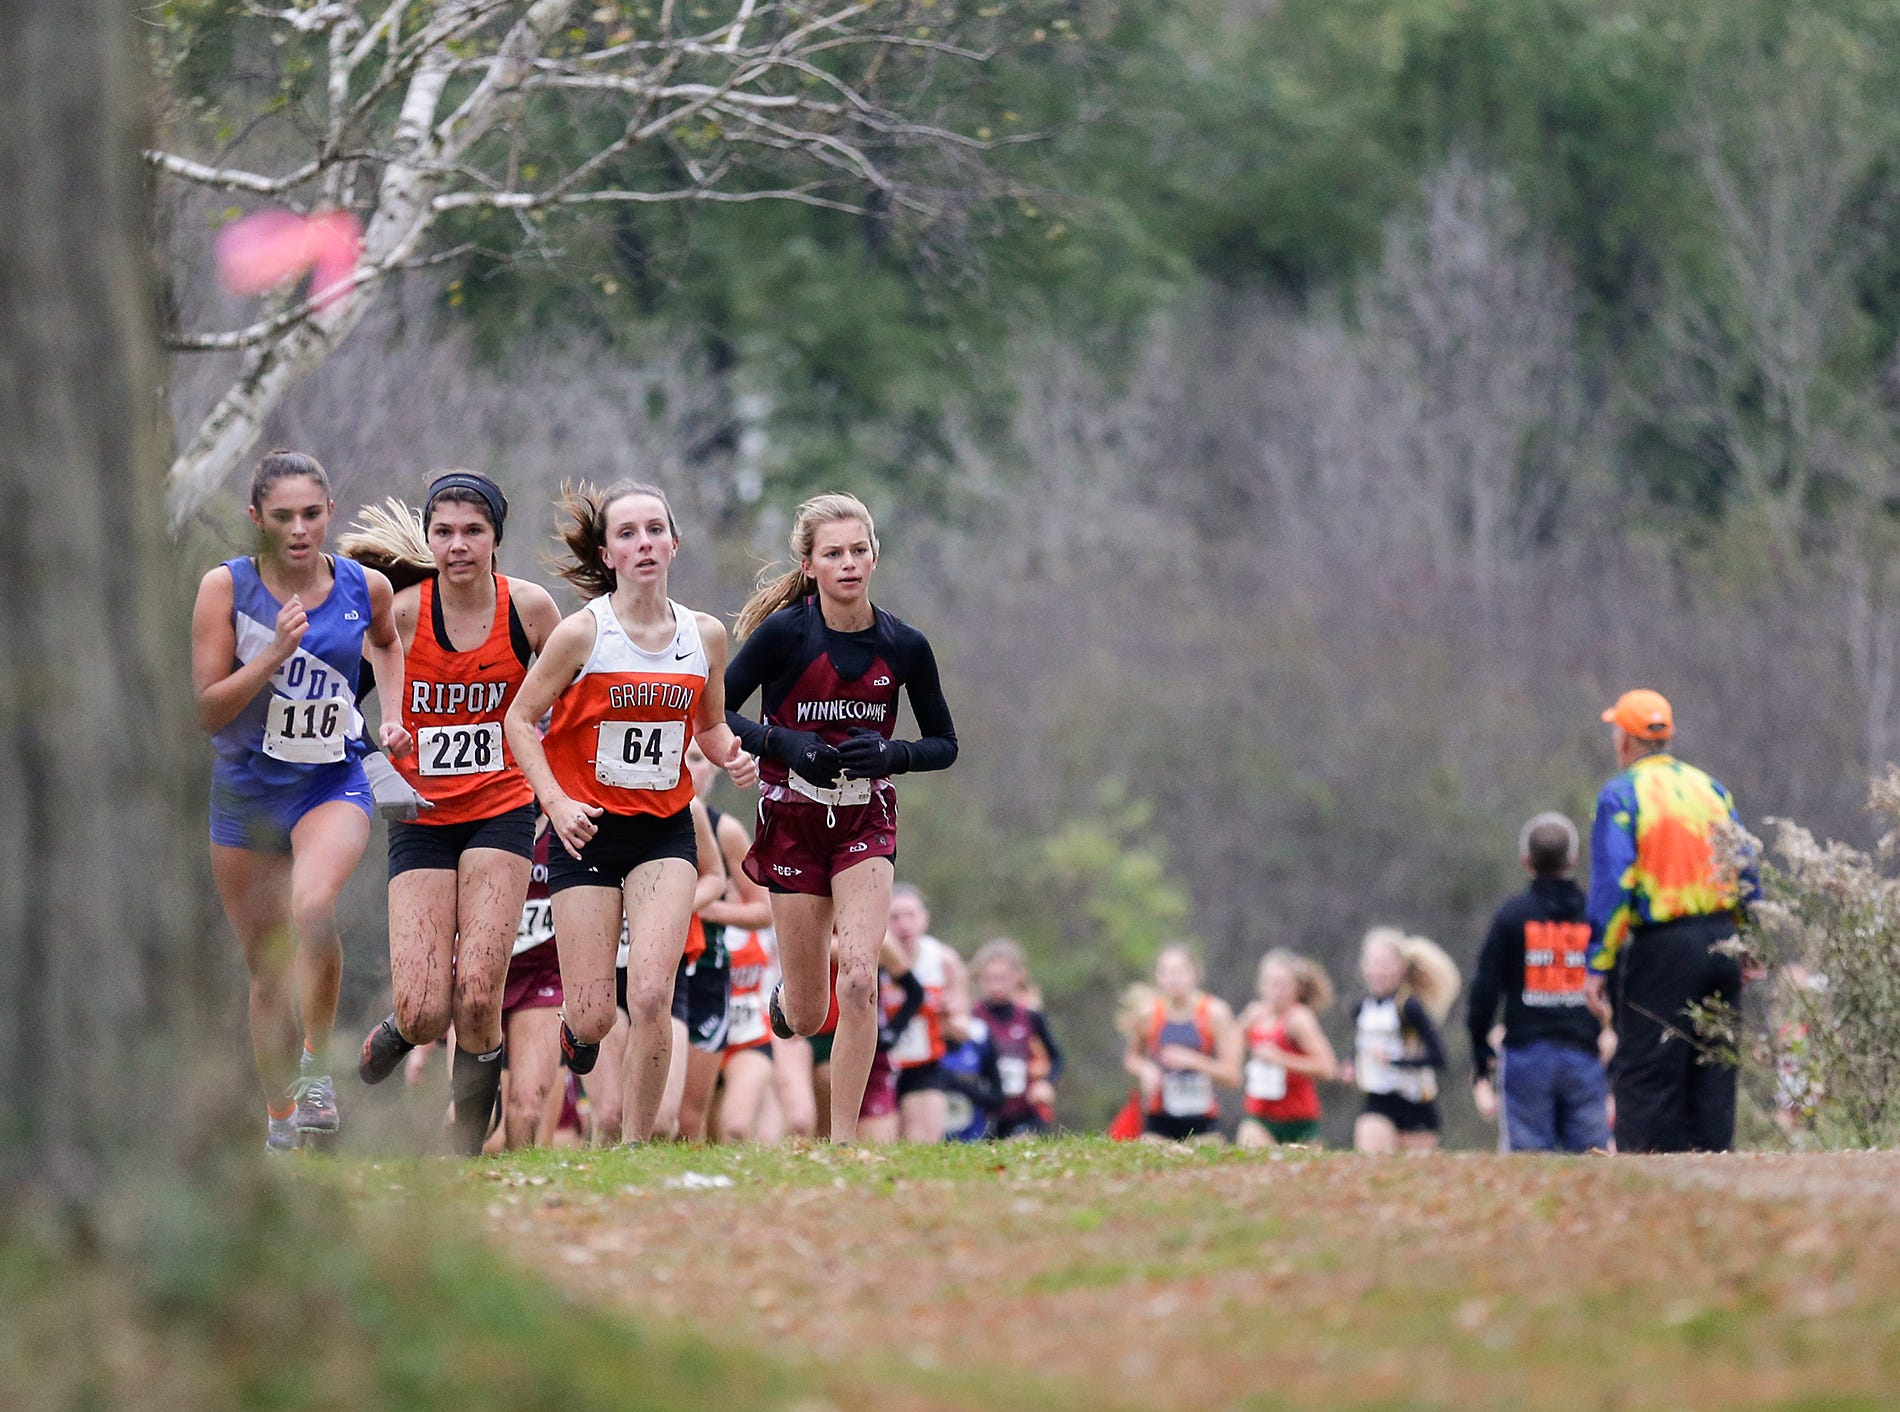 15 area High Schools compete in the WIAA Division two Mayville sectional cross country meet at the Mayville golf course Friday, October 19, 2018. Doug Raflik/USA TODAY NETWORK-Wisconsin